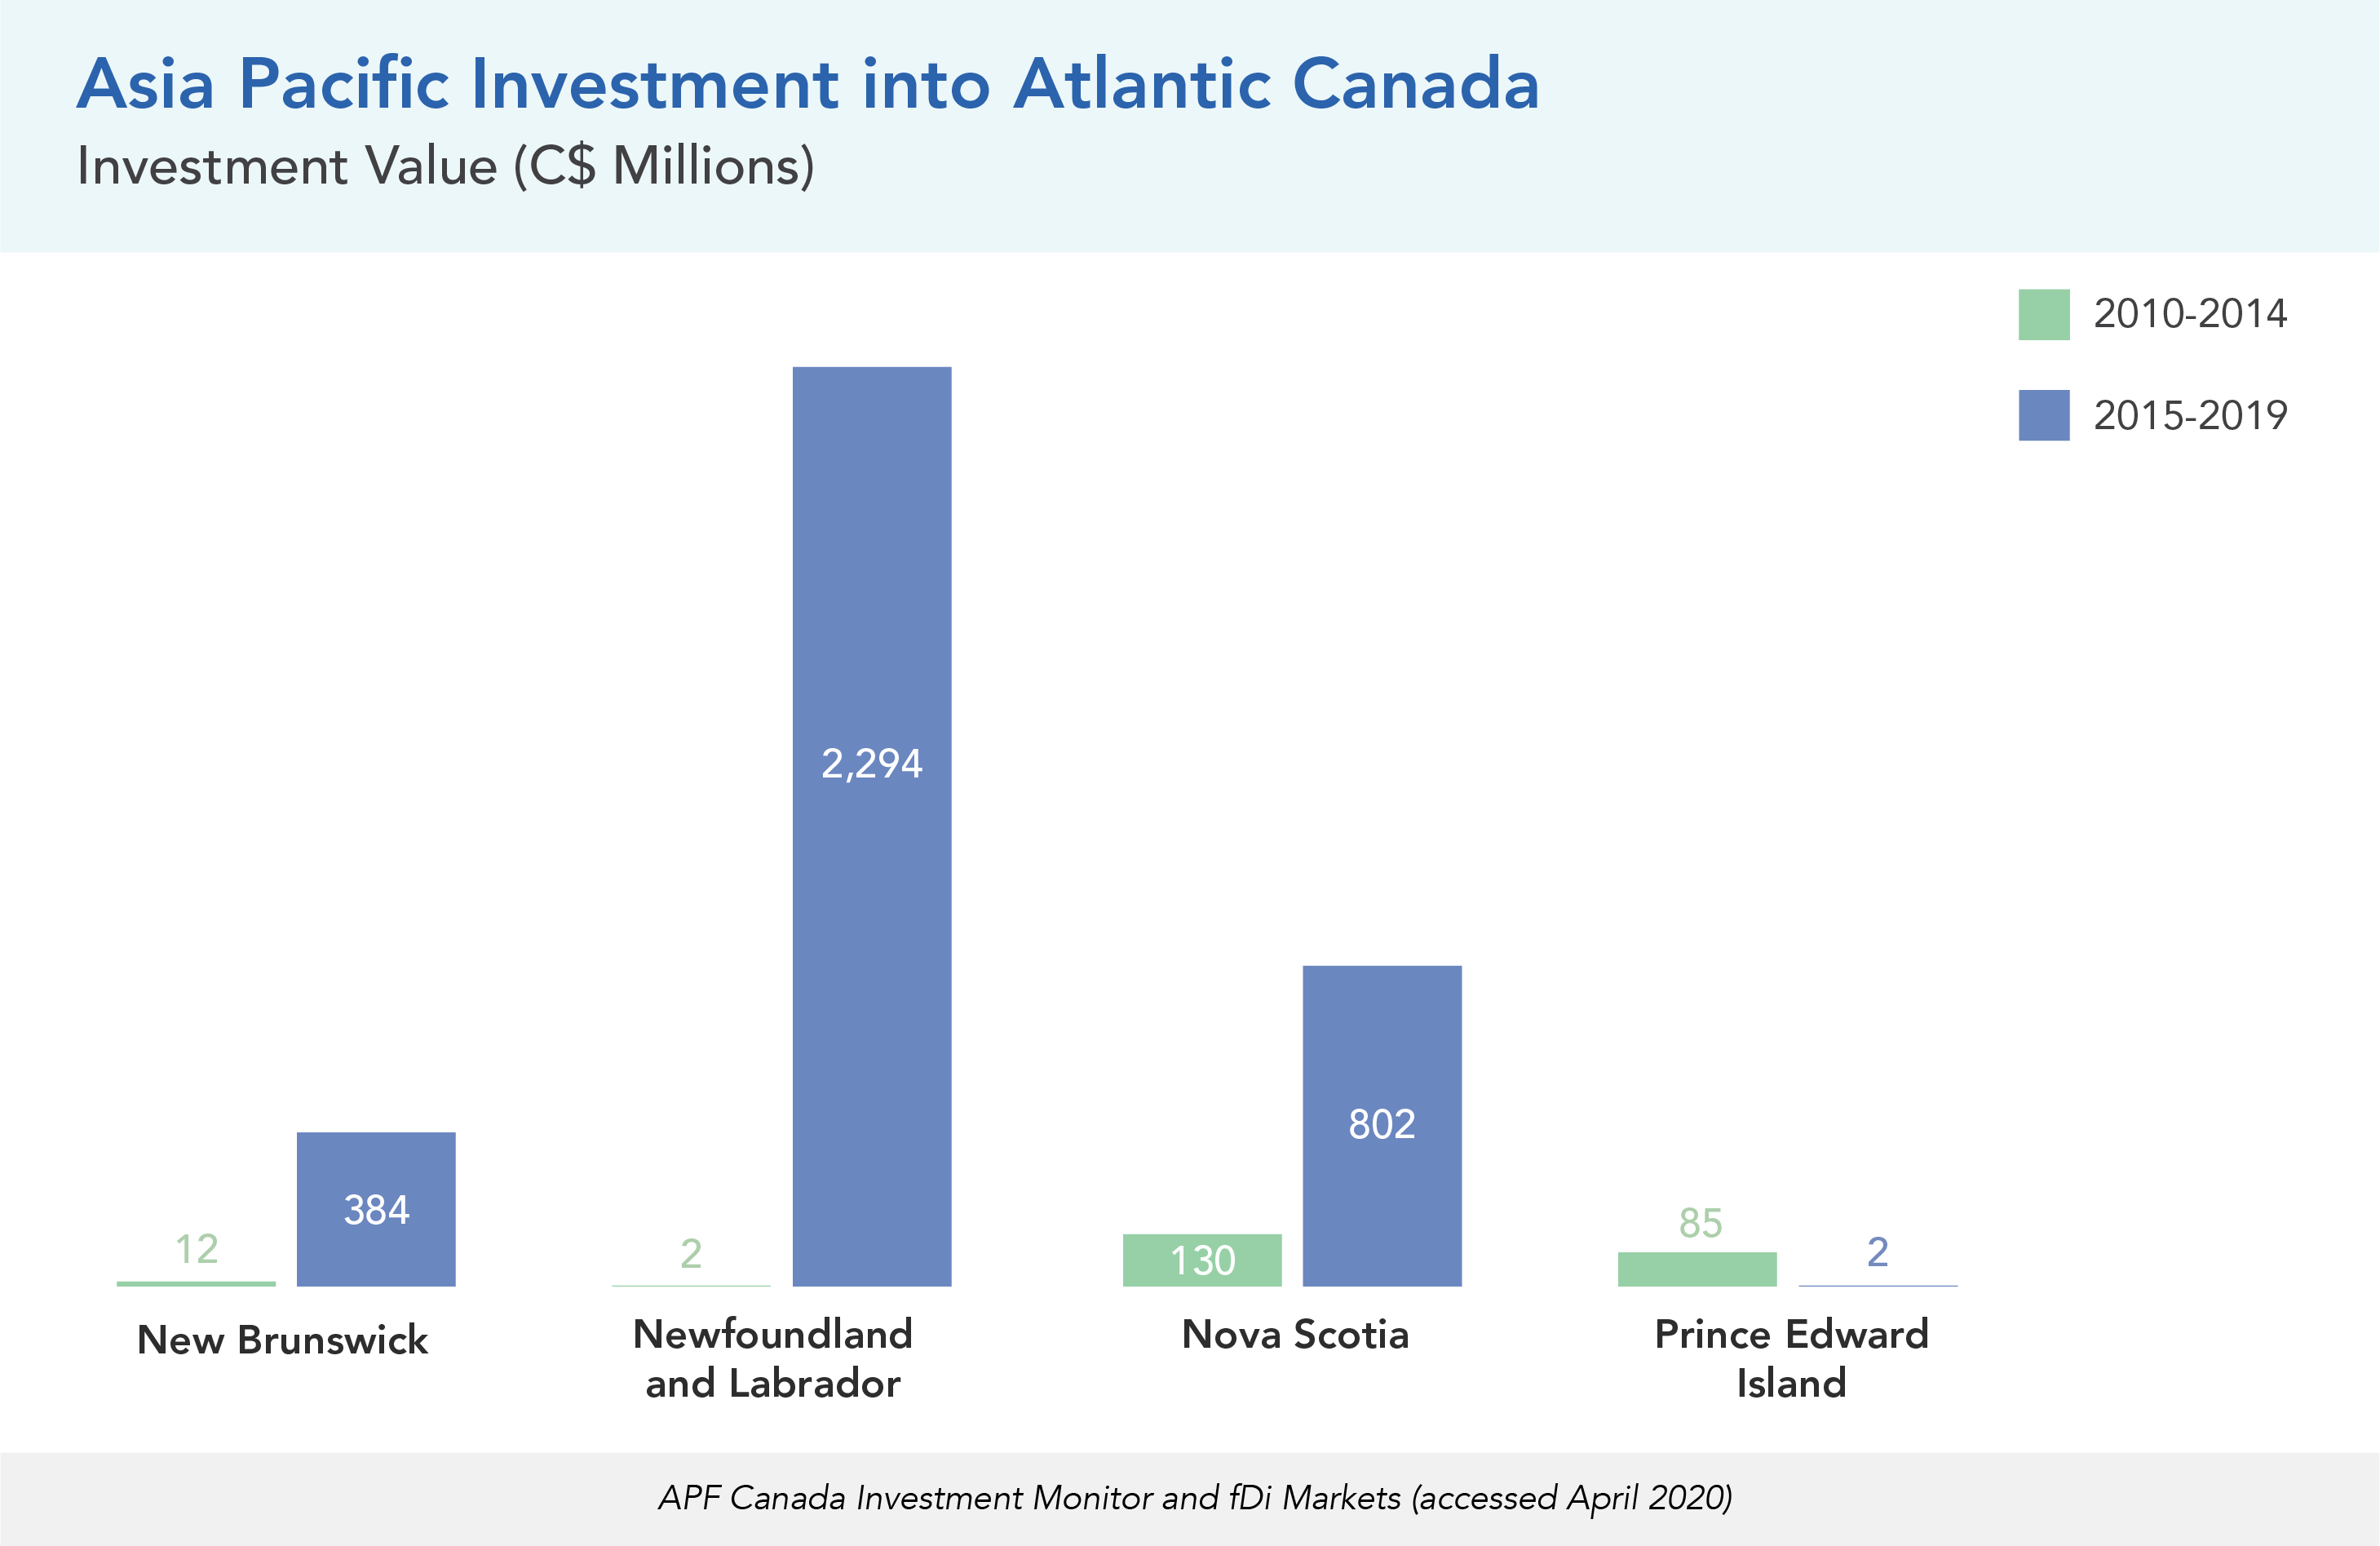 Asia Pacific Investment into Atlantic Canada